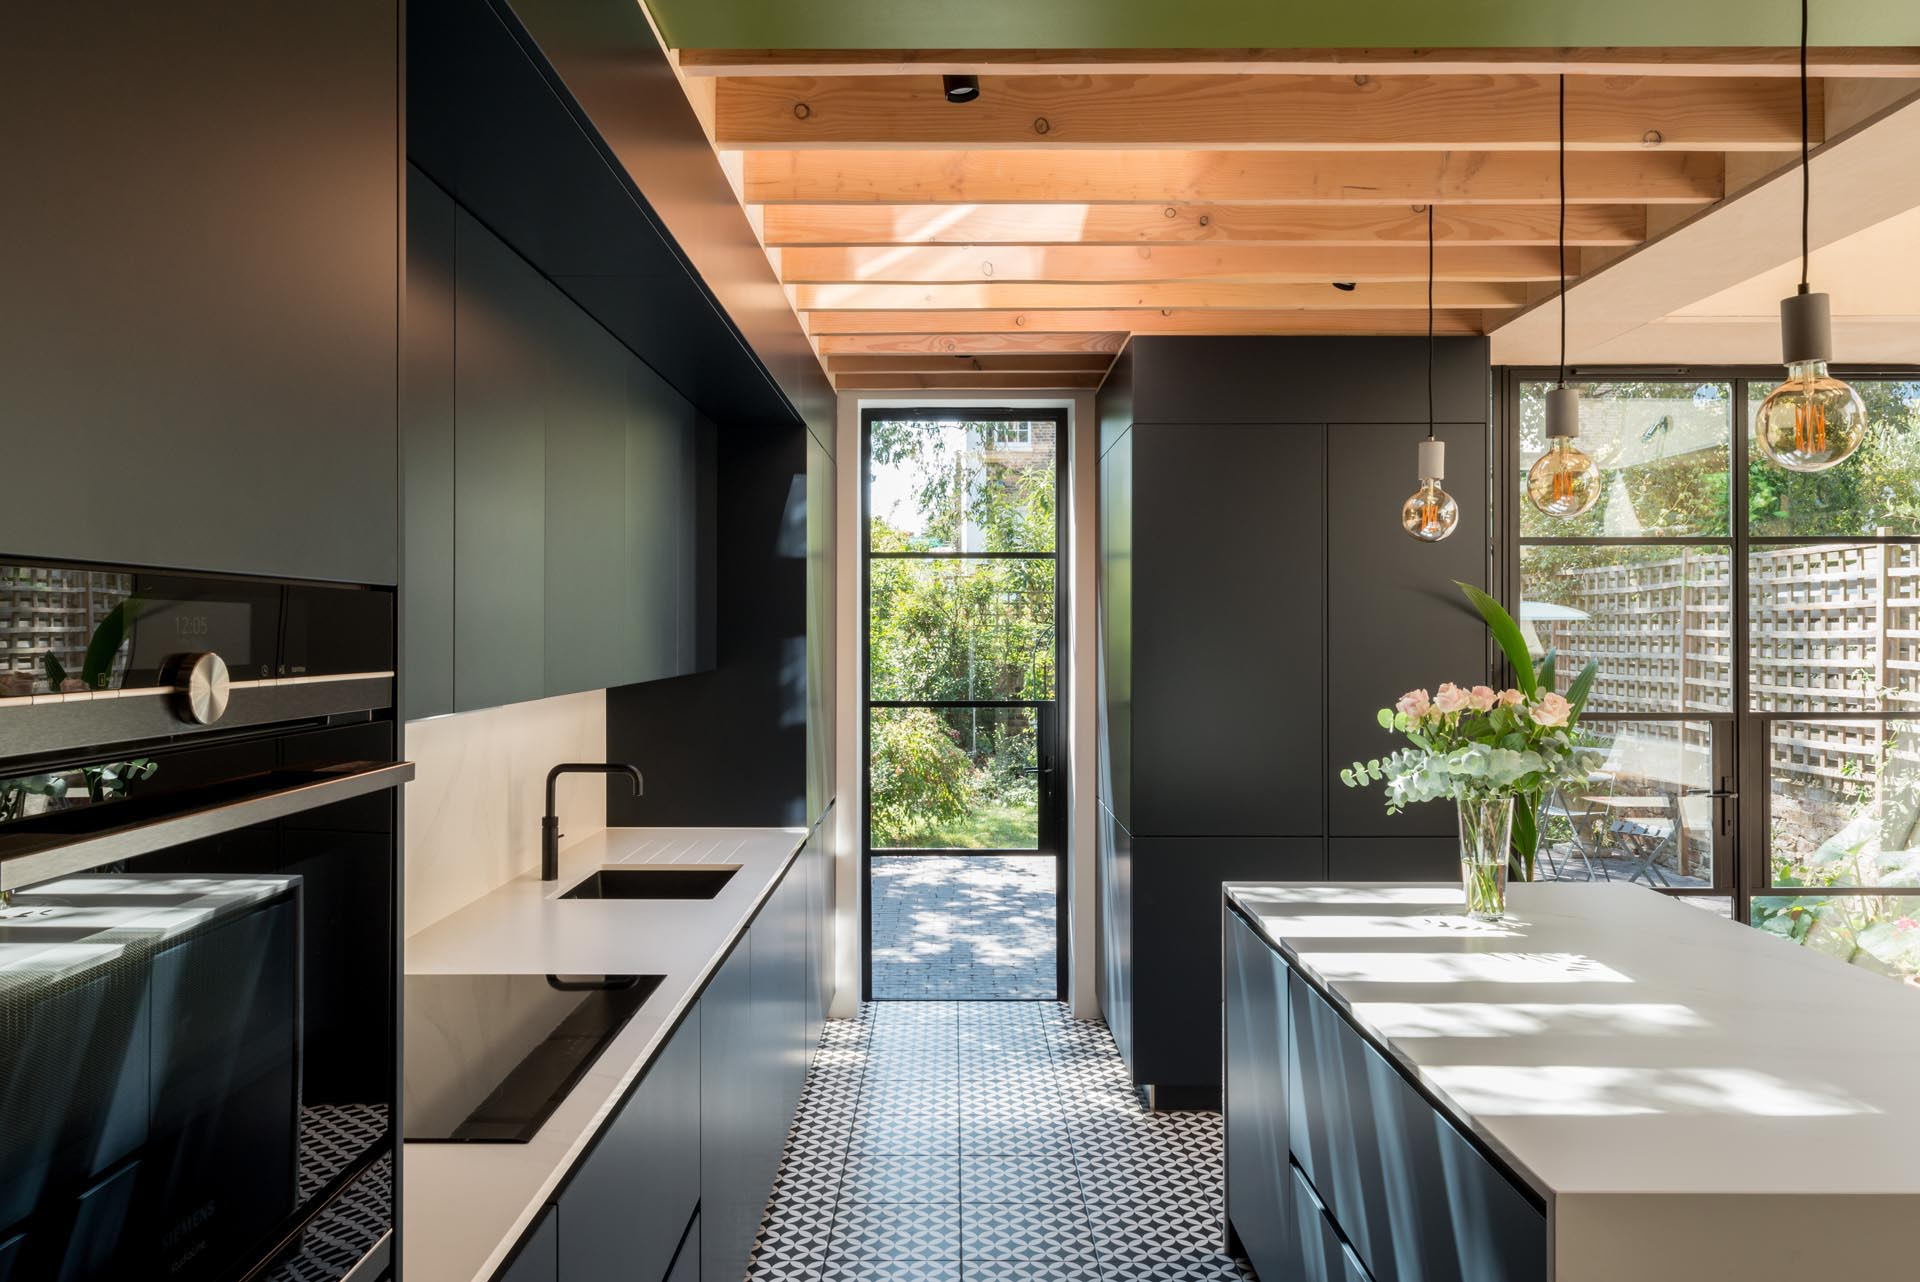 Minimalist matte black cabinets in this modern kitchen contrast the white countertops, while the patterned floor tile adds an artistic touch.